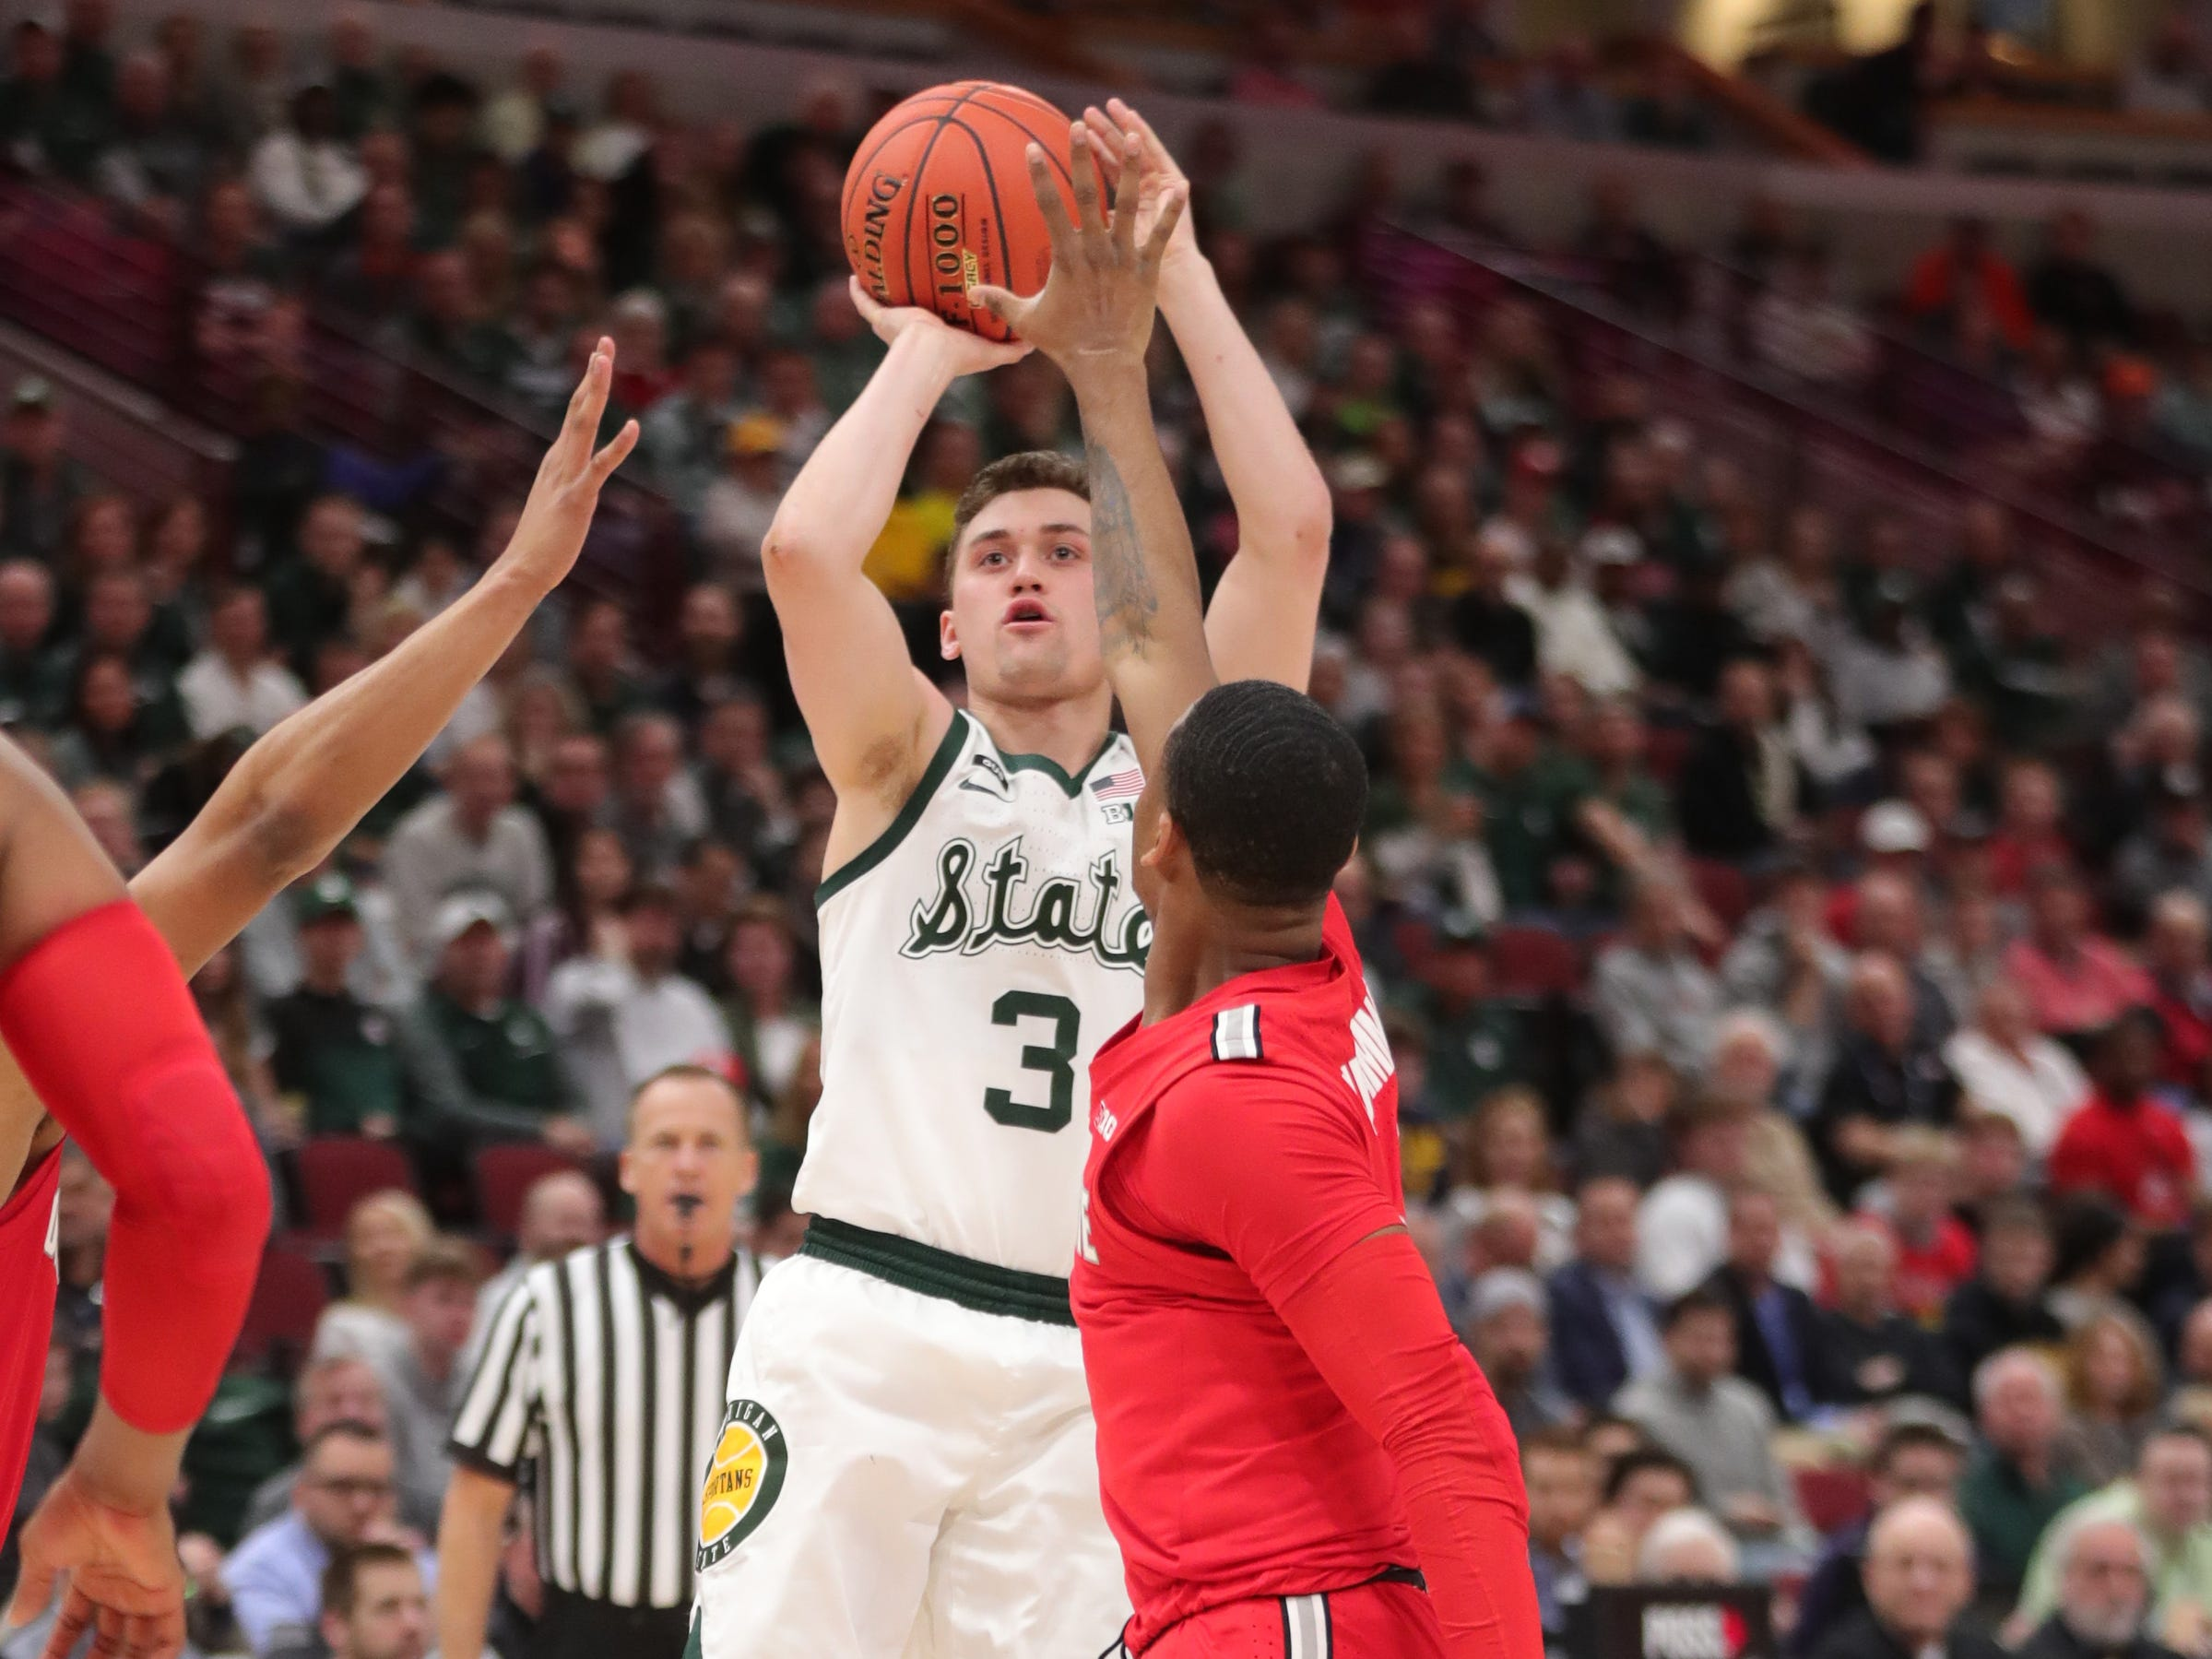 Michigan State's Foster Loyer scores against Ohio State during the second half of the Big Ten tournament Friday, March 15, 2019 at the United Center in Chicago.